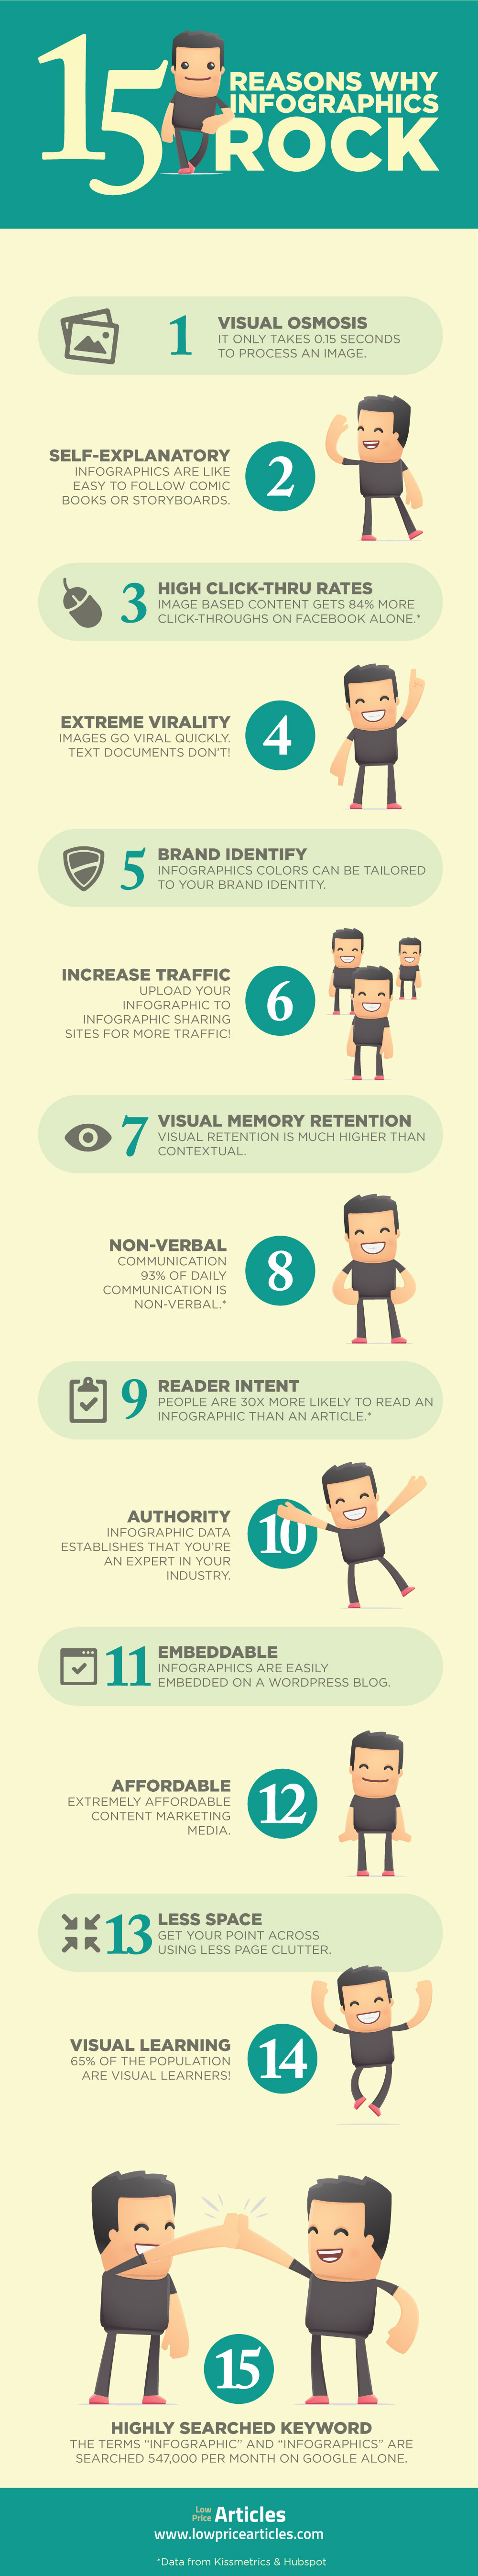 15 Reasons Why Infographics Rock